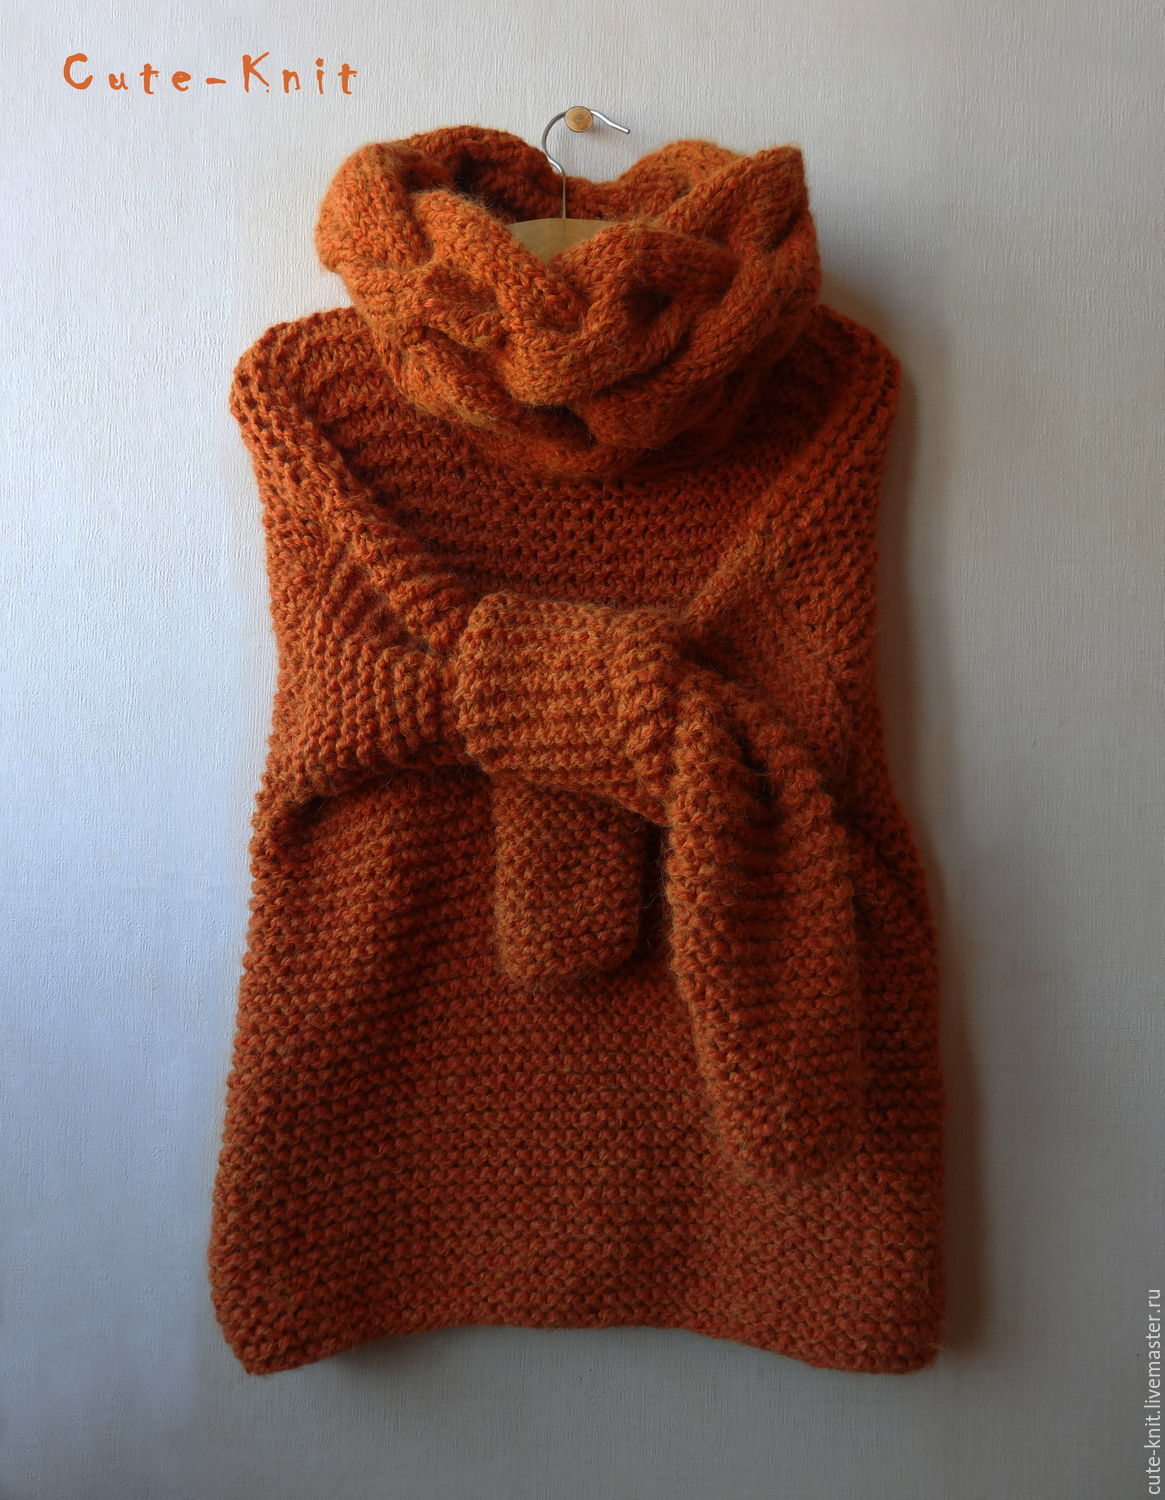 To better visualize the model, click on the photo. CUTE-KNIT, Nathaniel of Armormaster to Buy orange women's large knitted sweater